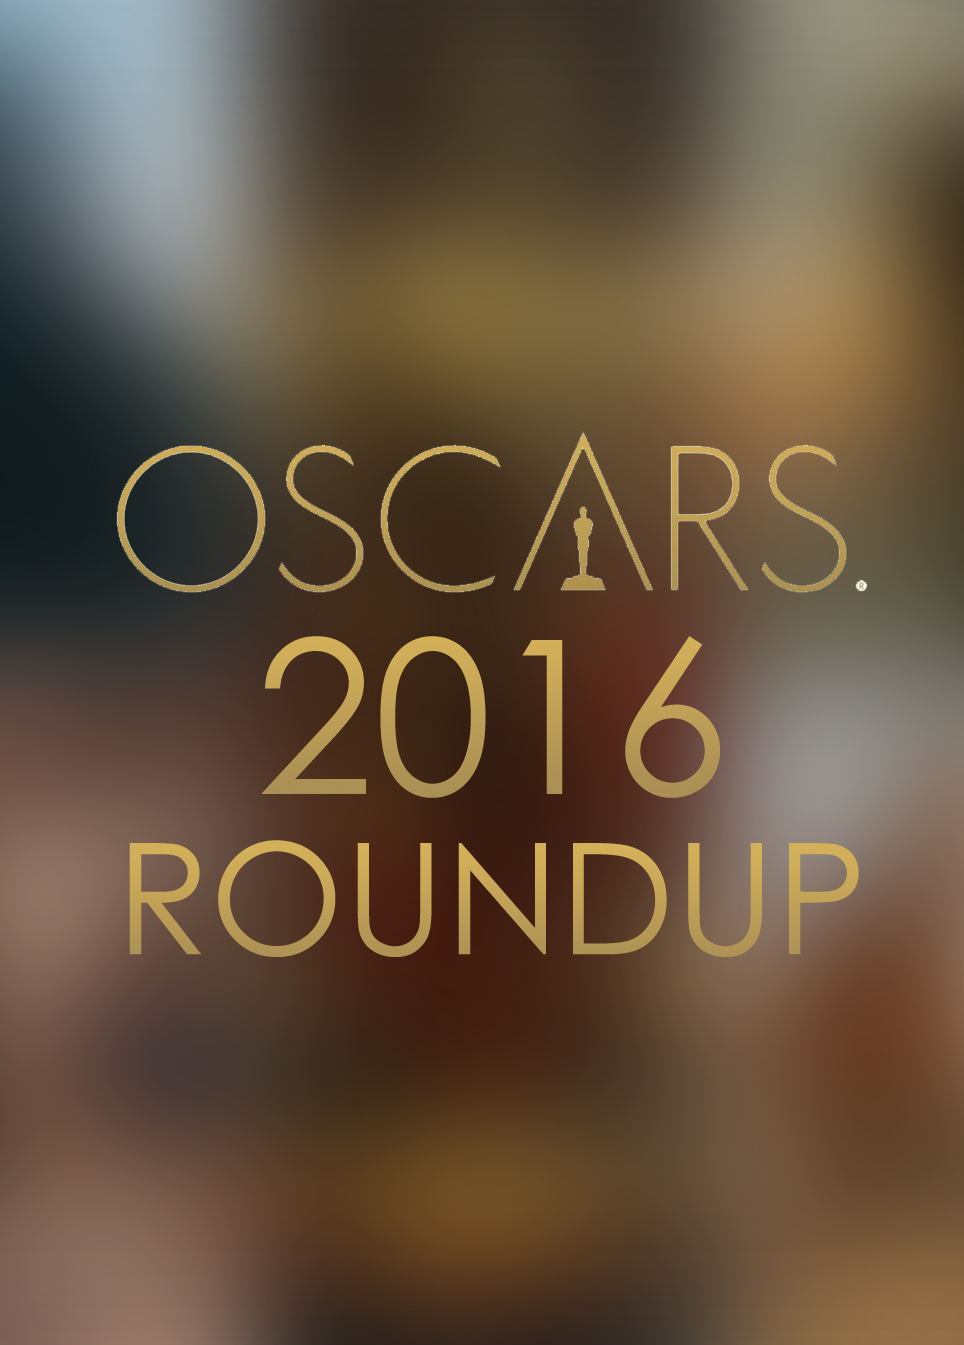 The 2016 Oscar Roundup